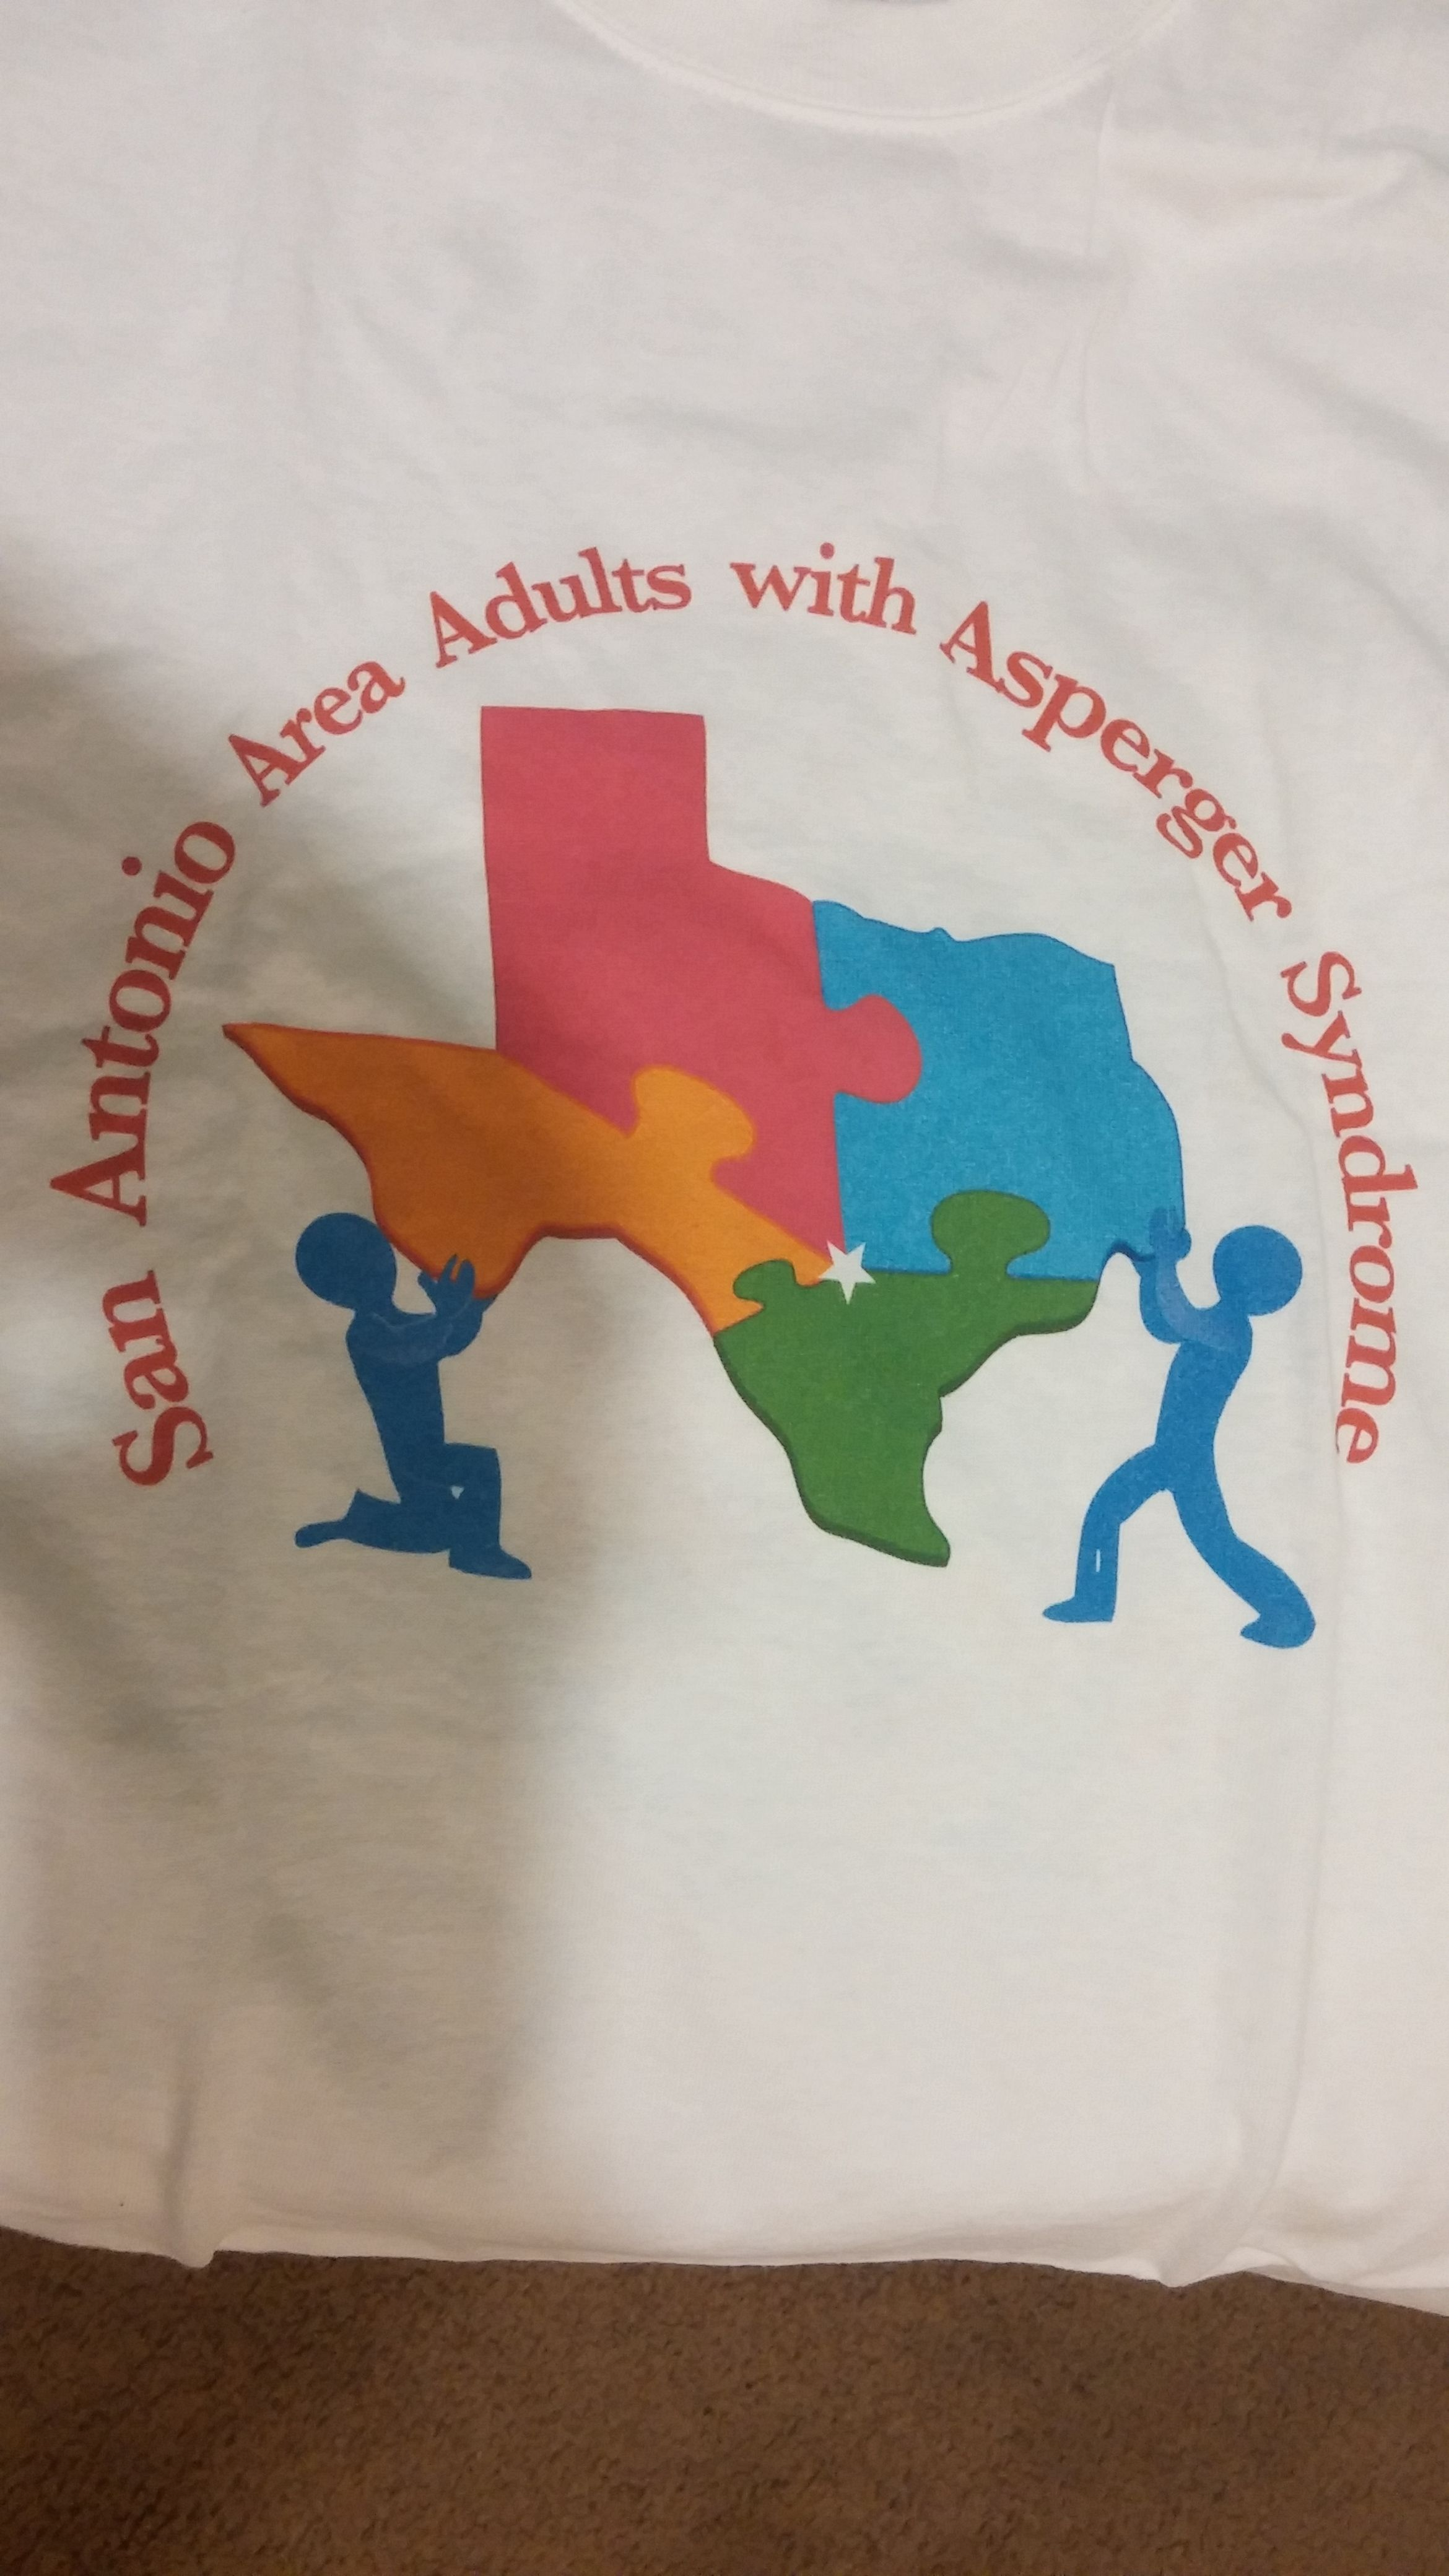 San Antonio Area Adults with Asperger's Syndrome